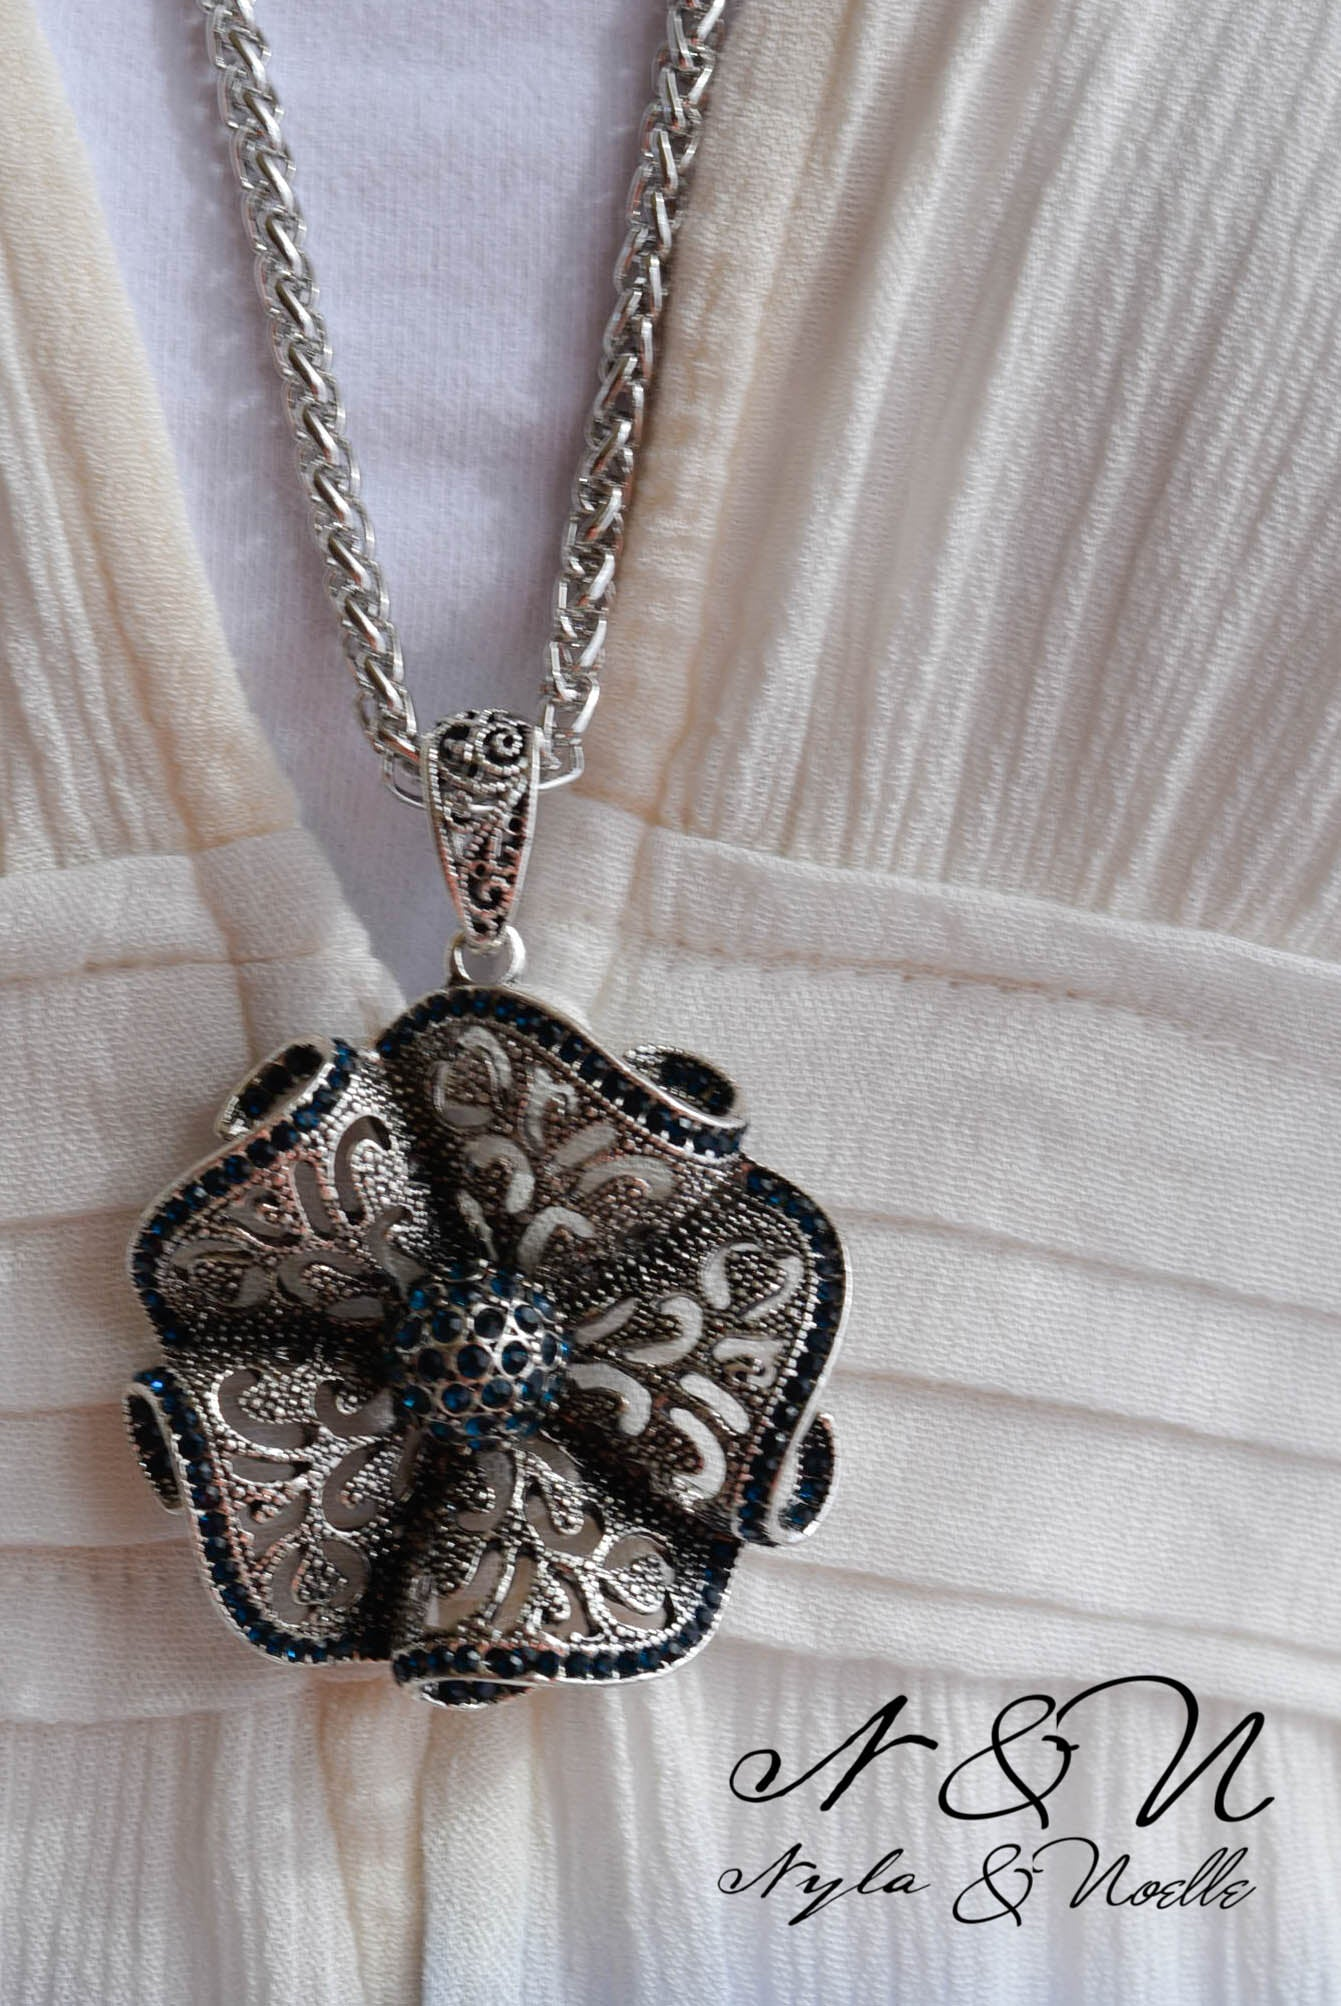 WILD FLOWER - Western Ornate Flower with Sapphire Colored Stones Necklace